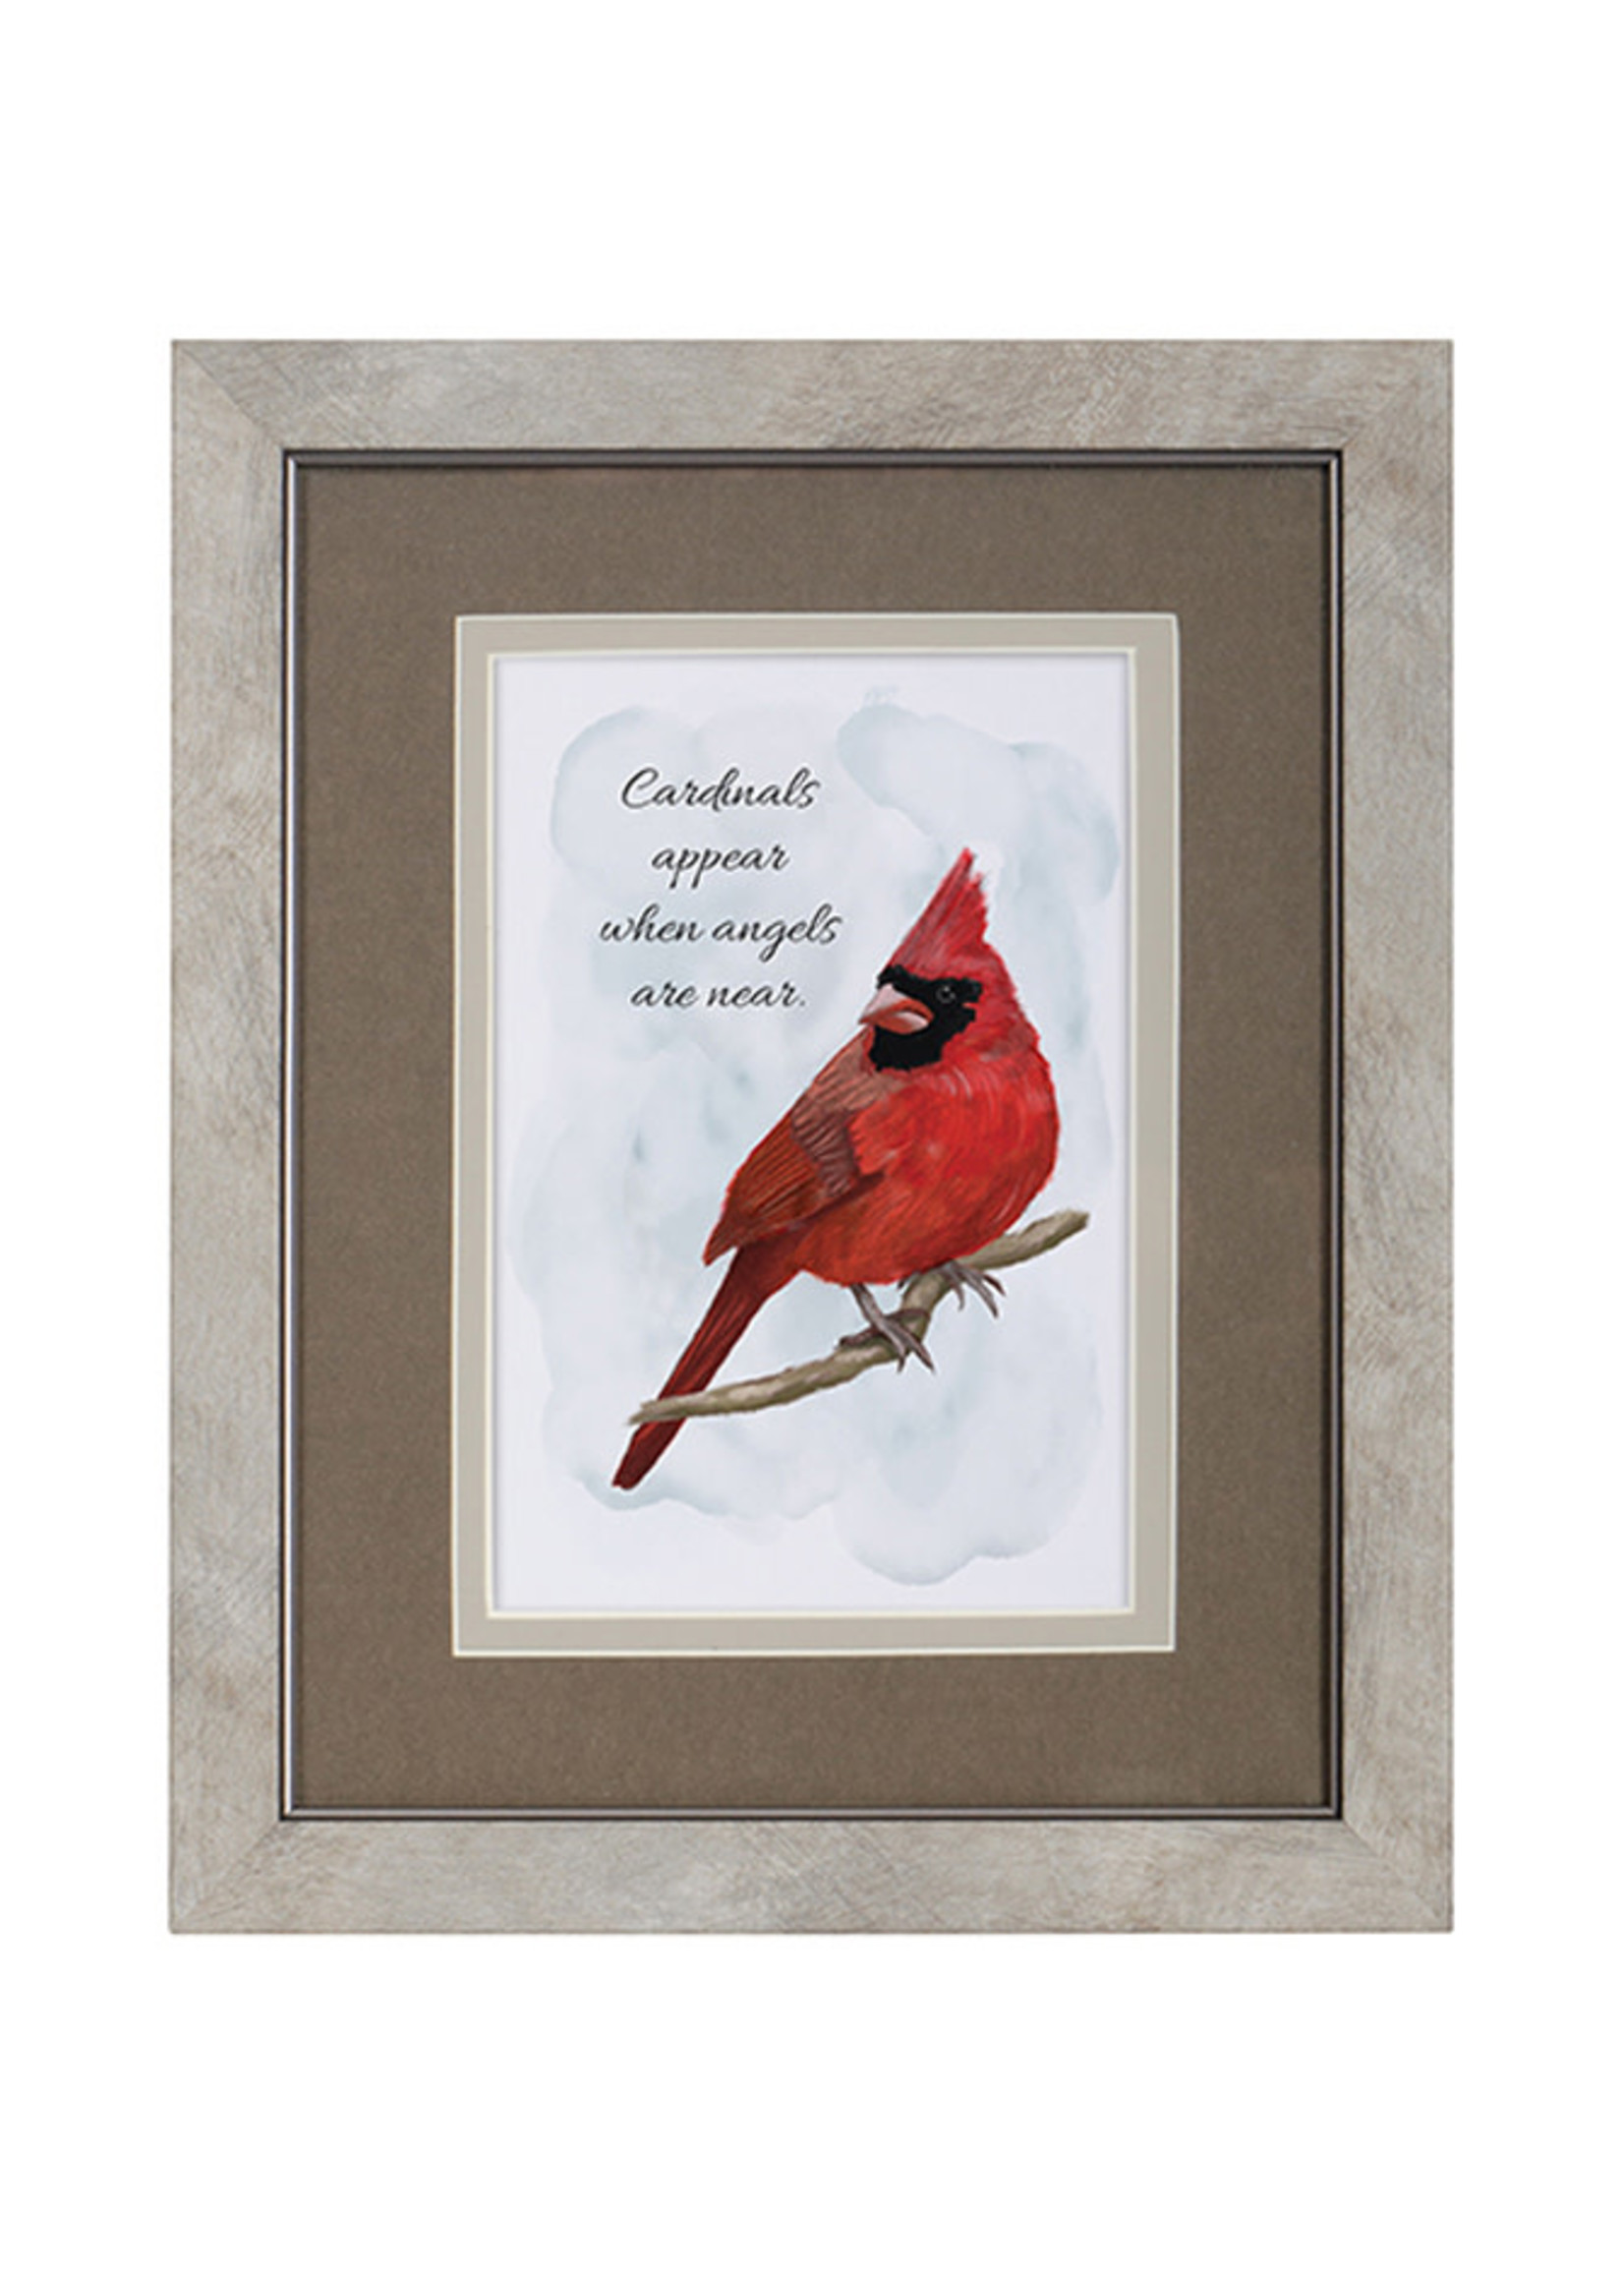 """Carson Home Accents """"Cardinals Appear"""" Framed Blessing"""